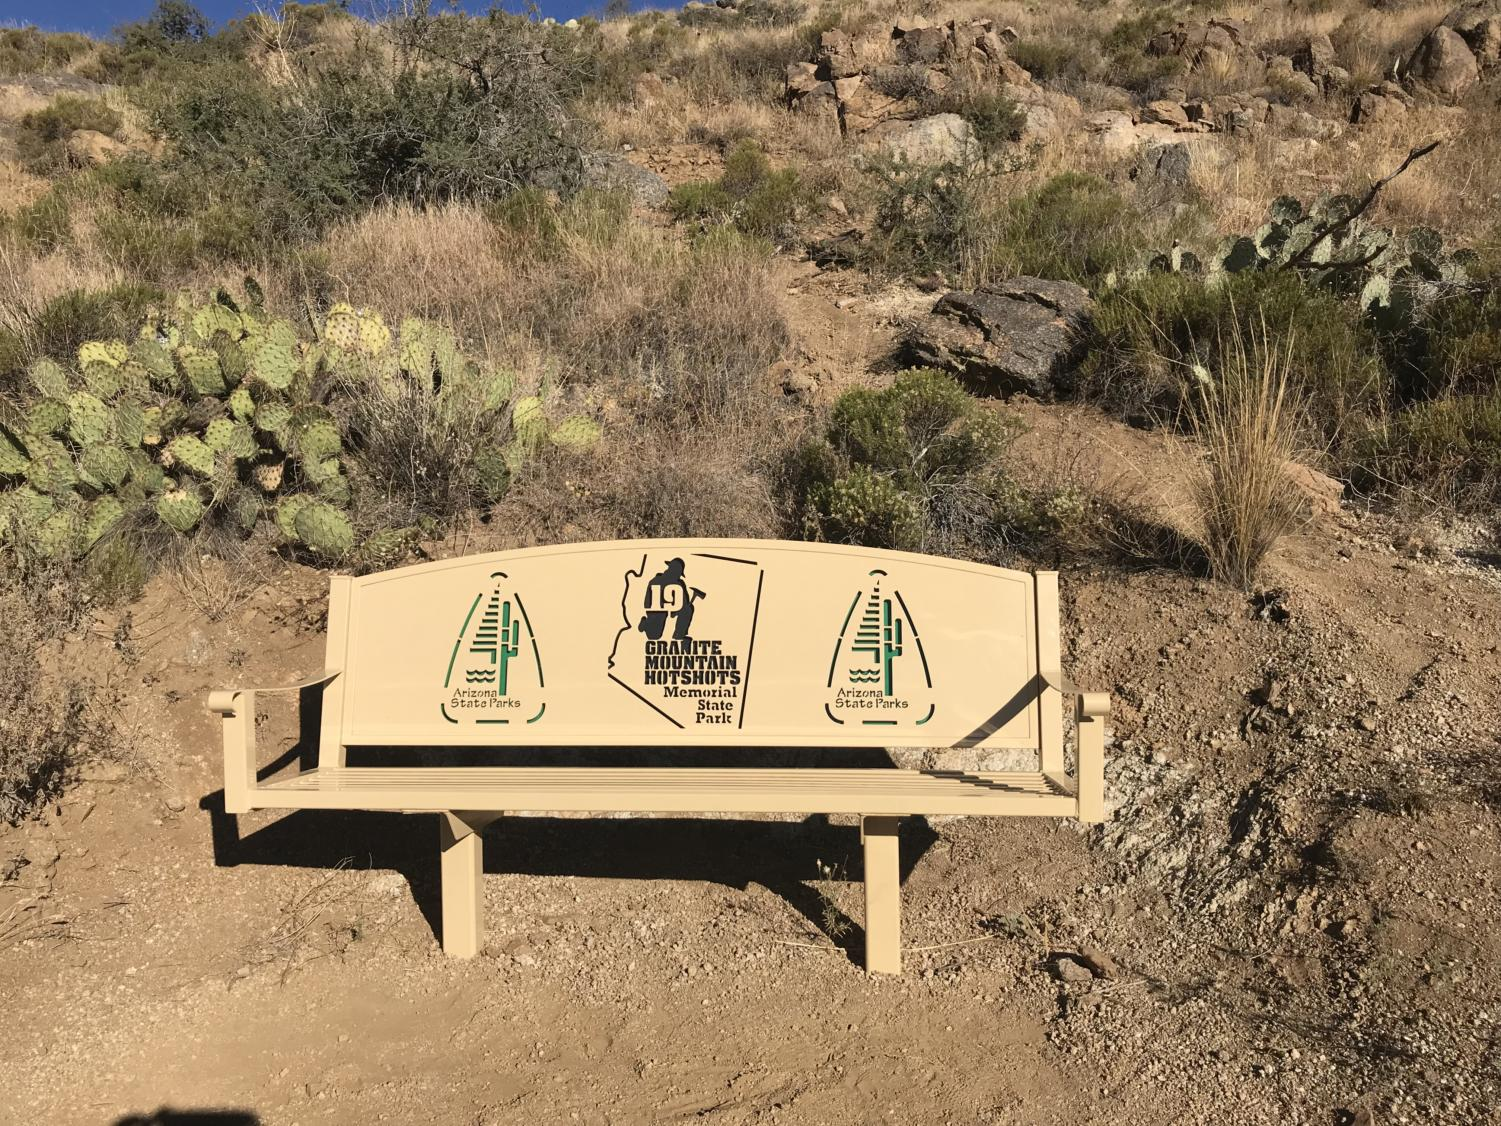 A bench at the Granite Mountain Hotshots Memorial State Park. Photo courtesy of Melissa Shulski.